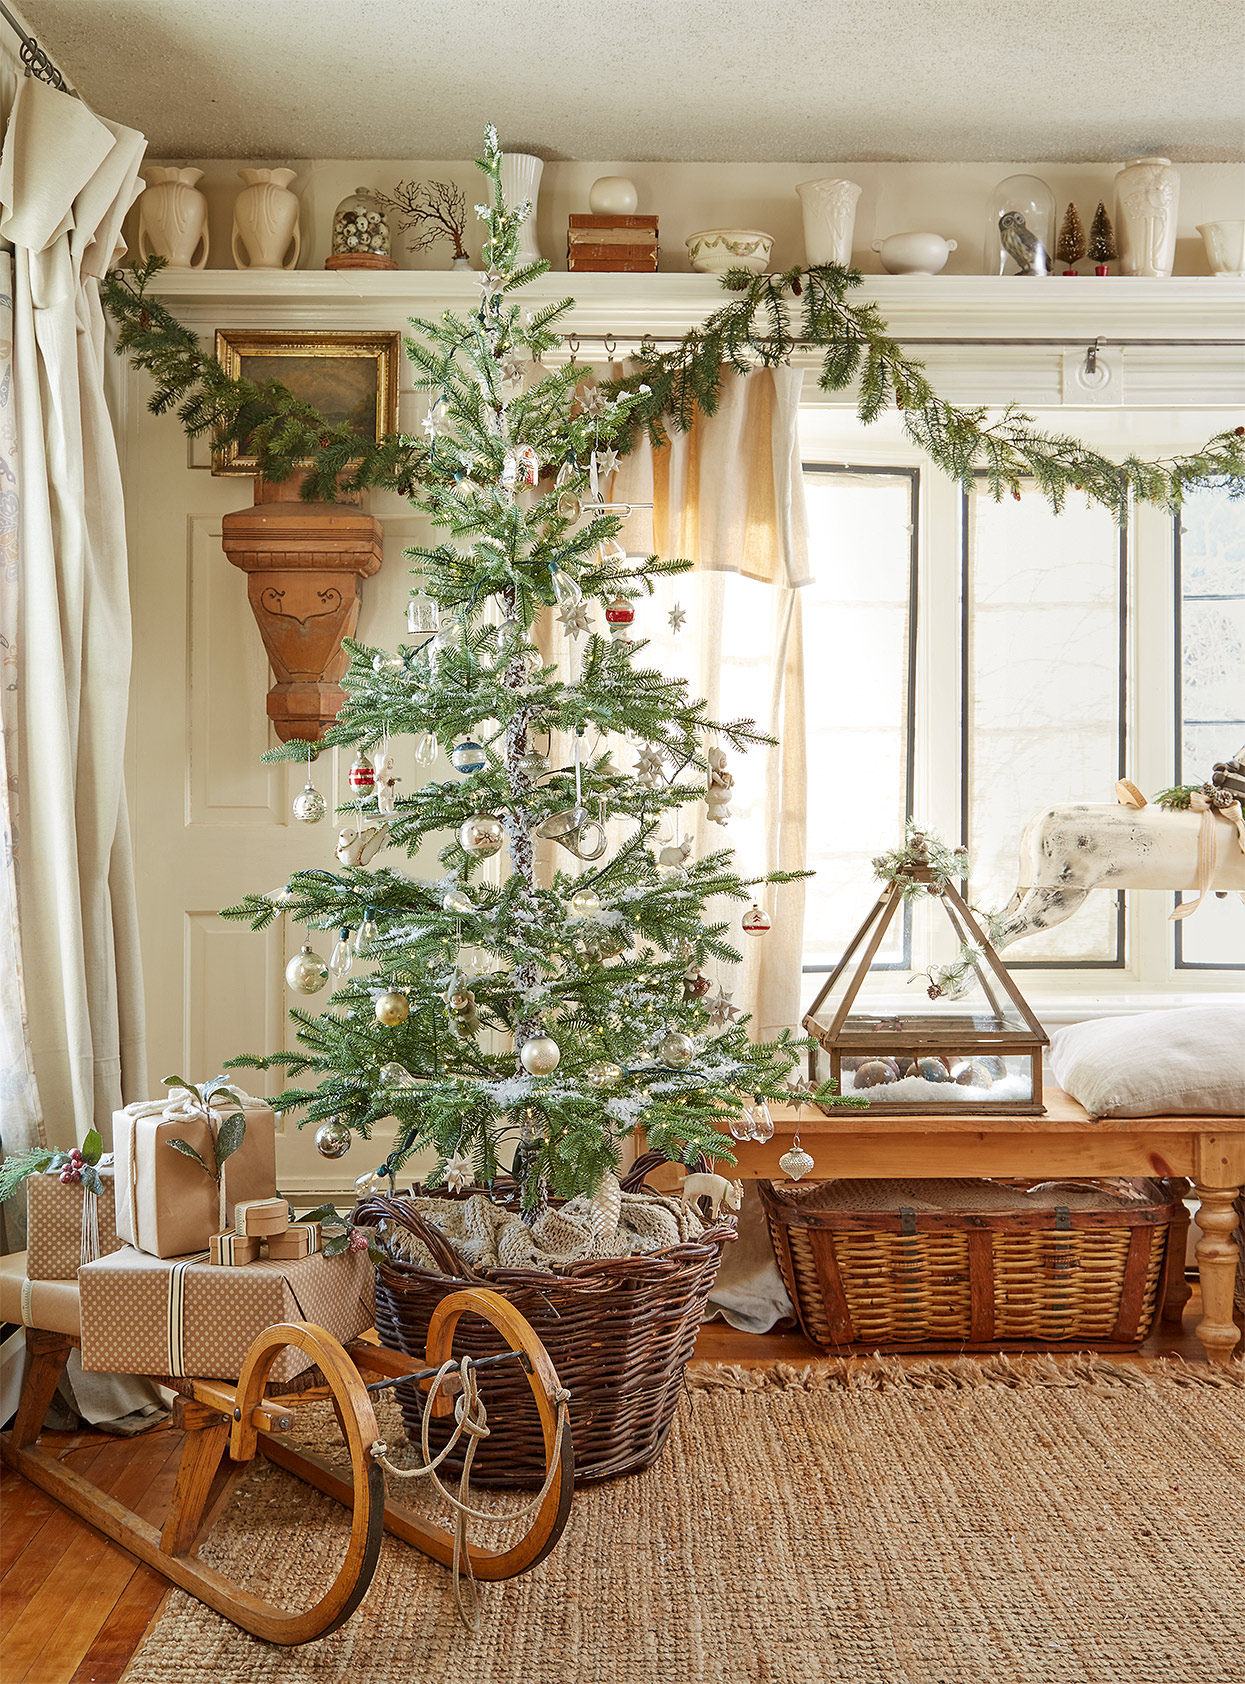 Christmas tree in basket near vintage sled in farmhouse room